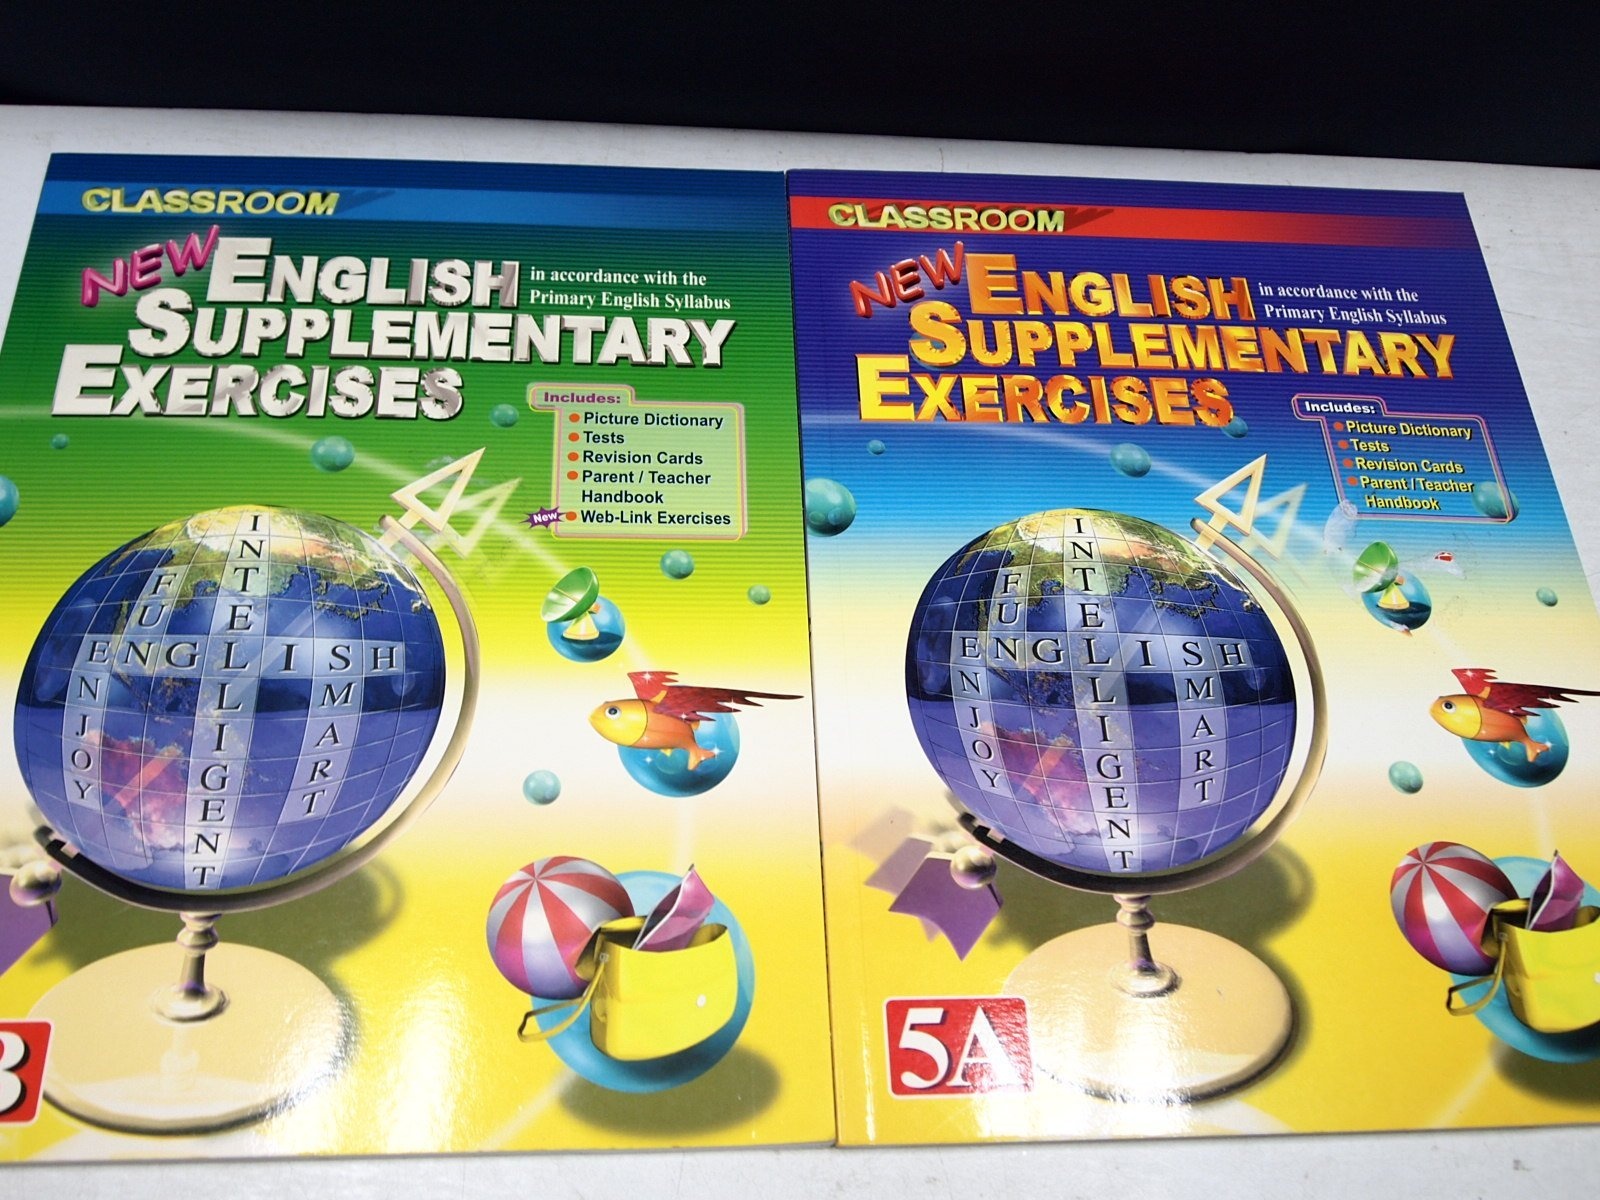 【考試院二手書】《NEW ENGLISH SUPPLEMENTARY EXERCISES 5A+5B 》│ 七成新